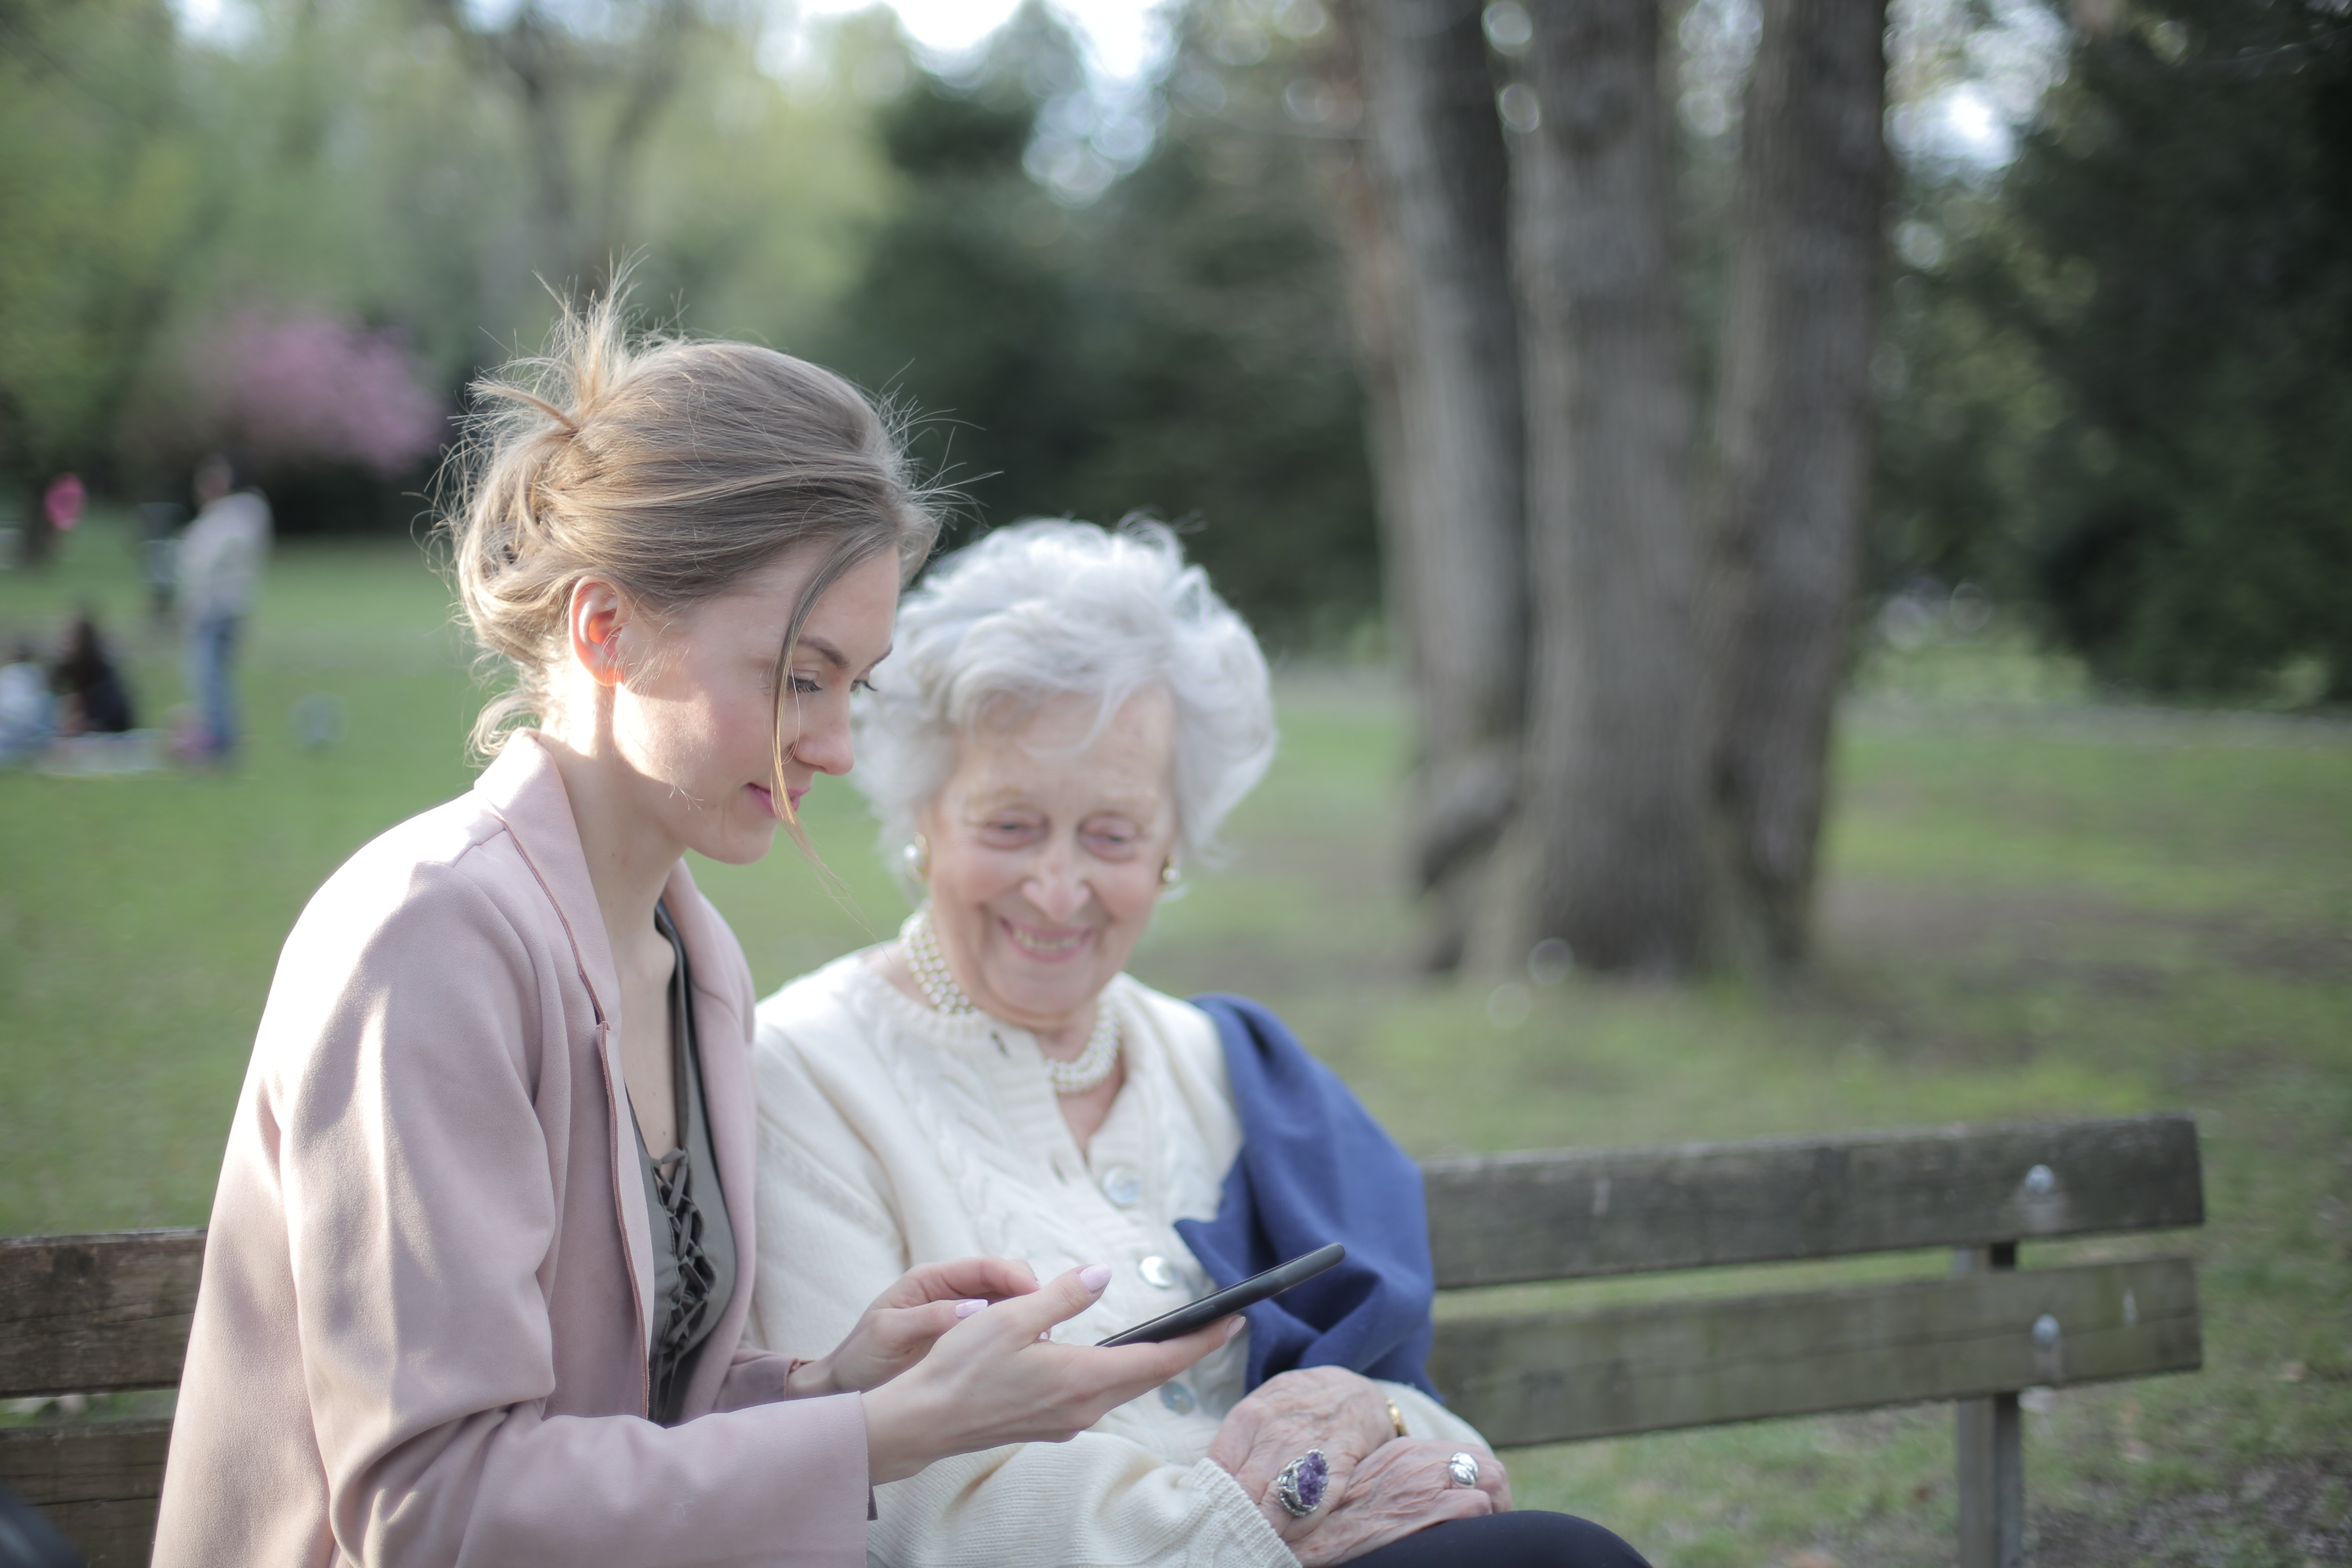 An elderly woman and a carer